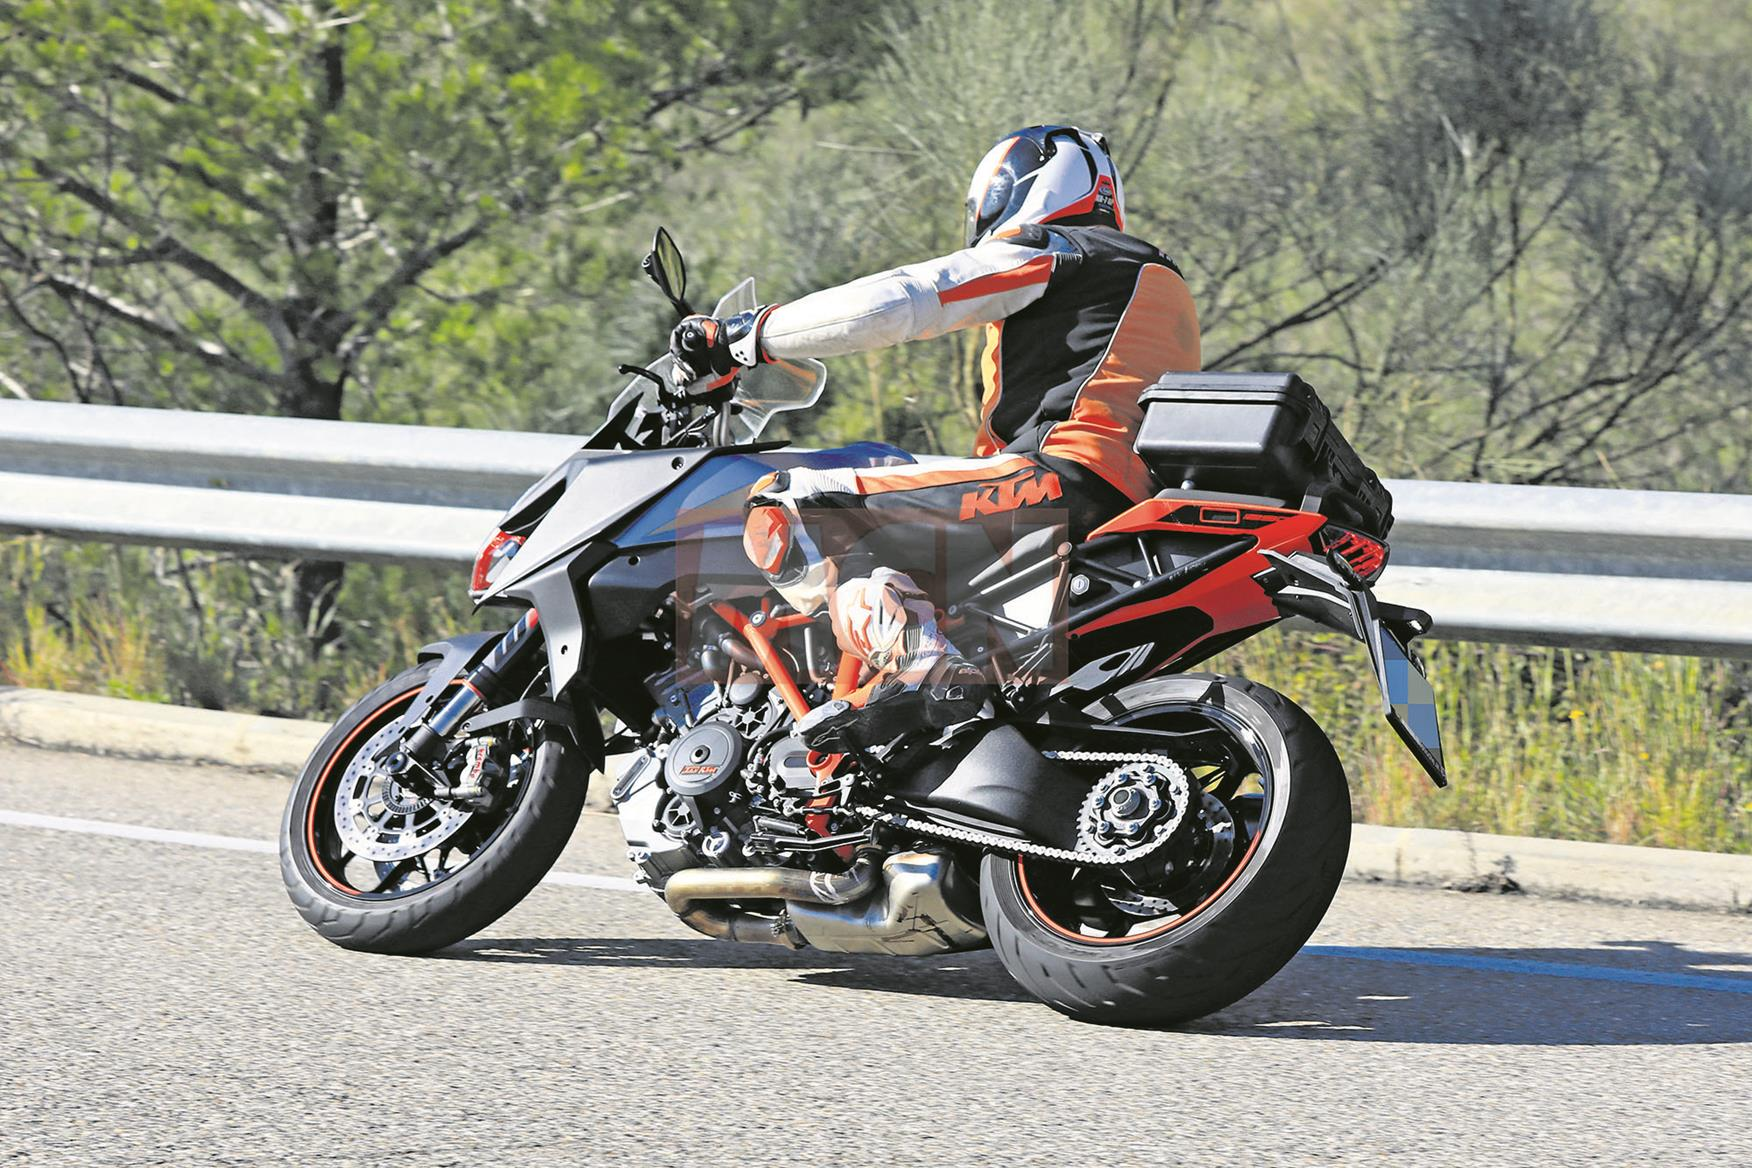 Spy shots! New KTM 1290 Super Duke GT spotted